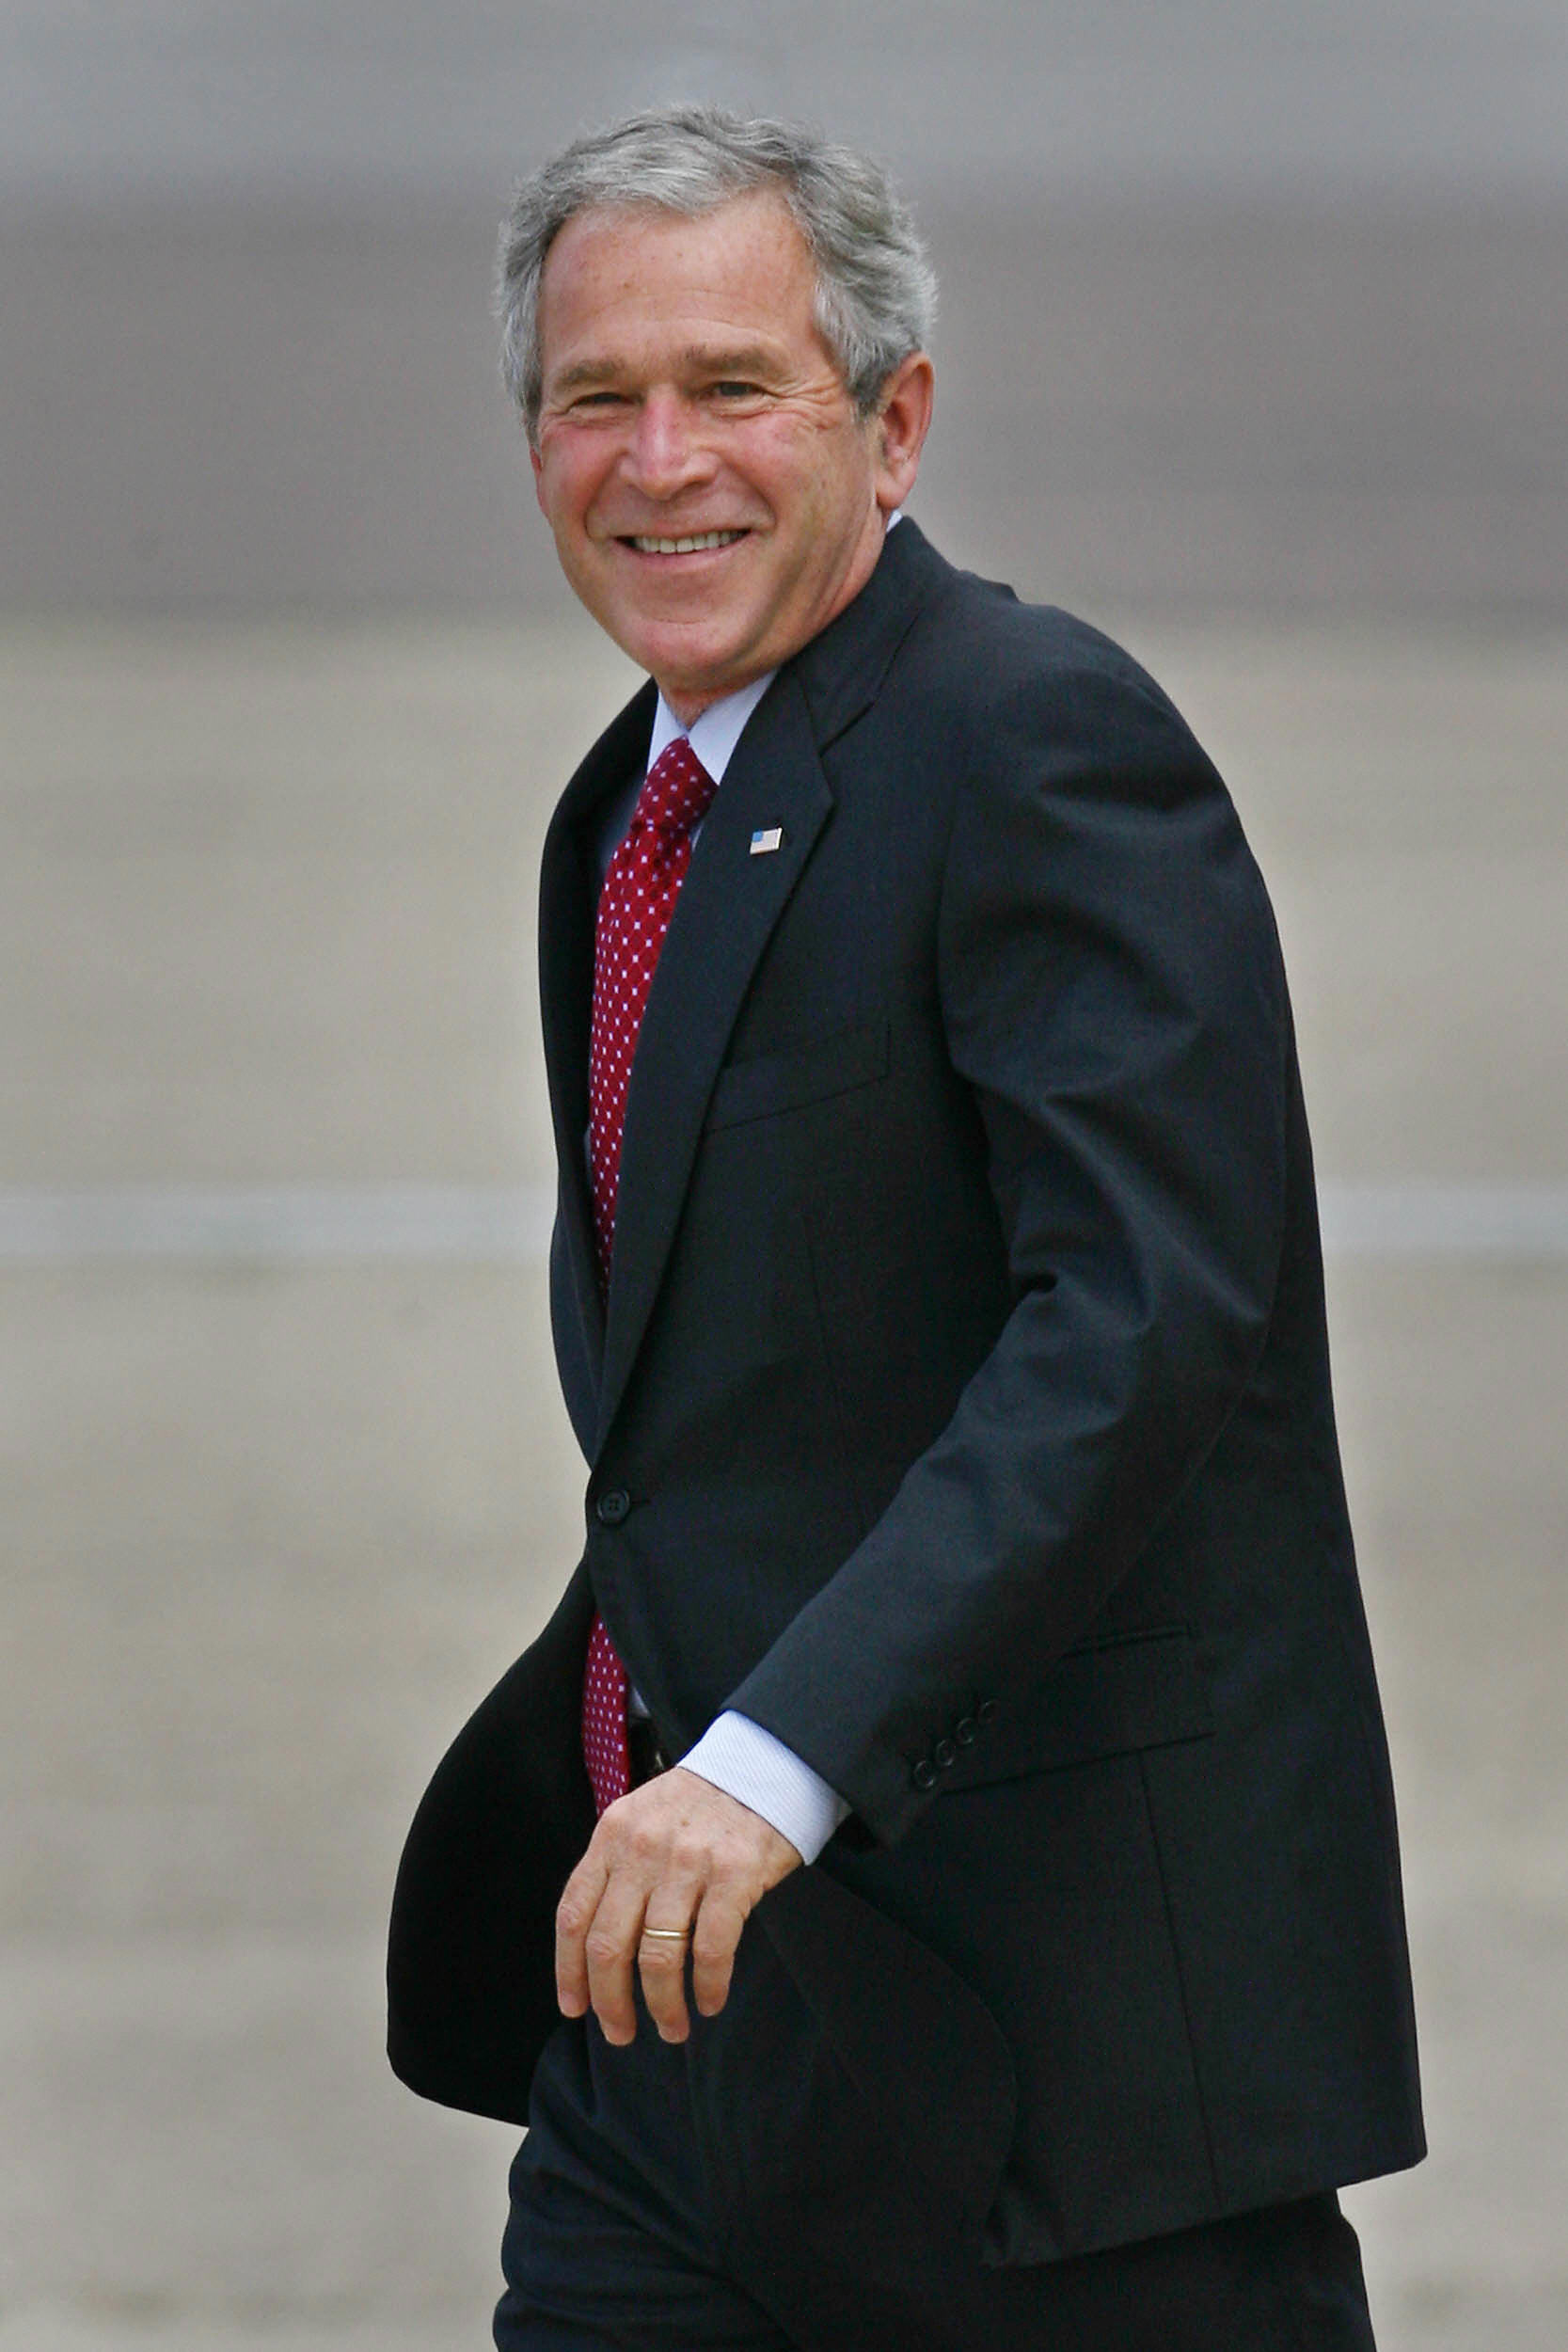 Bush lands at Heathrow after stops in Slovenia, Germany, Italy, the Vatican and France.